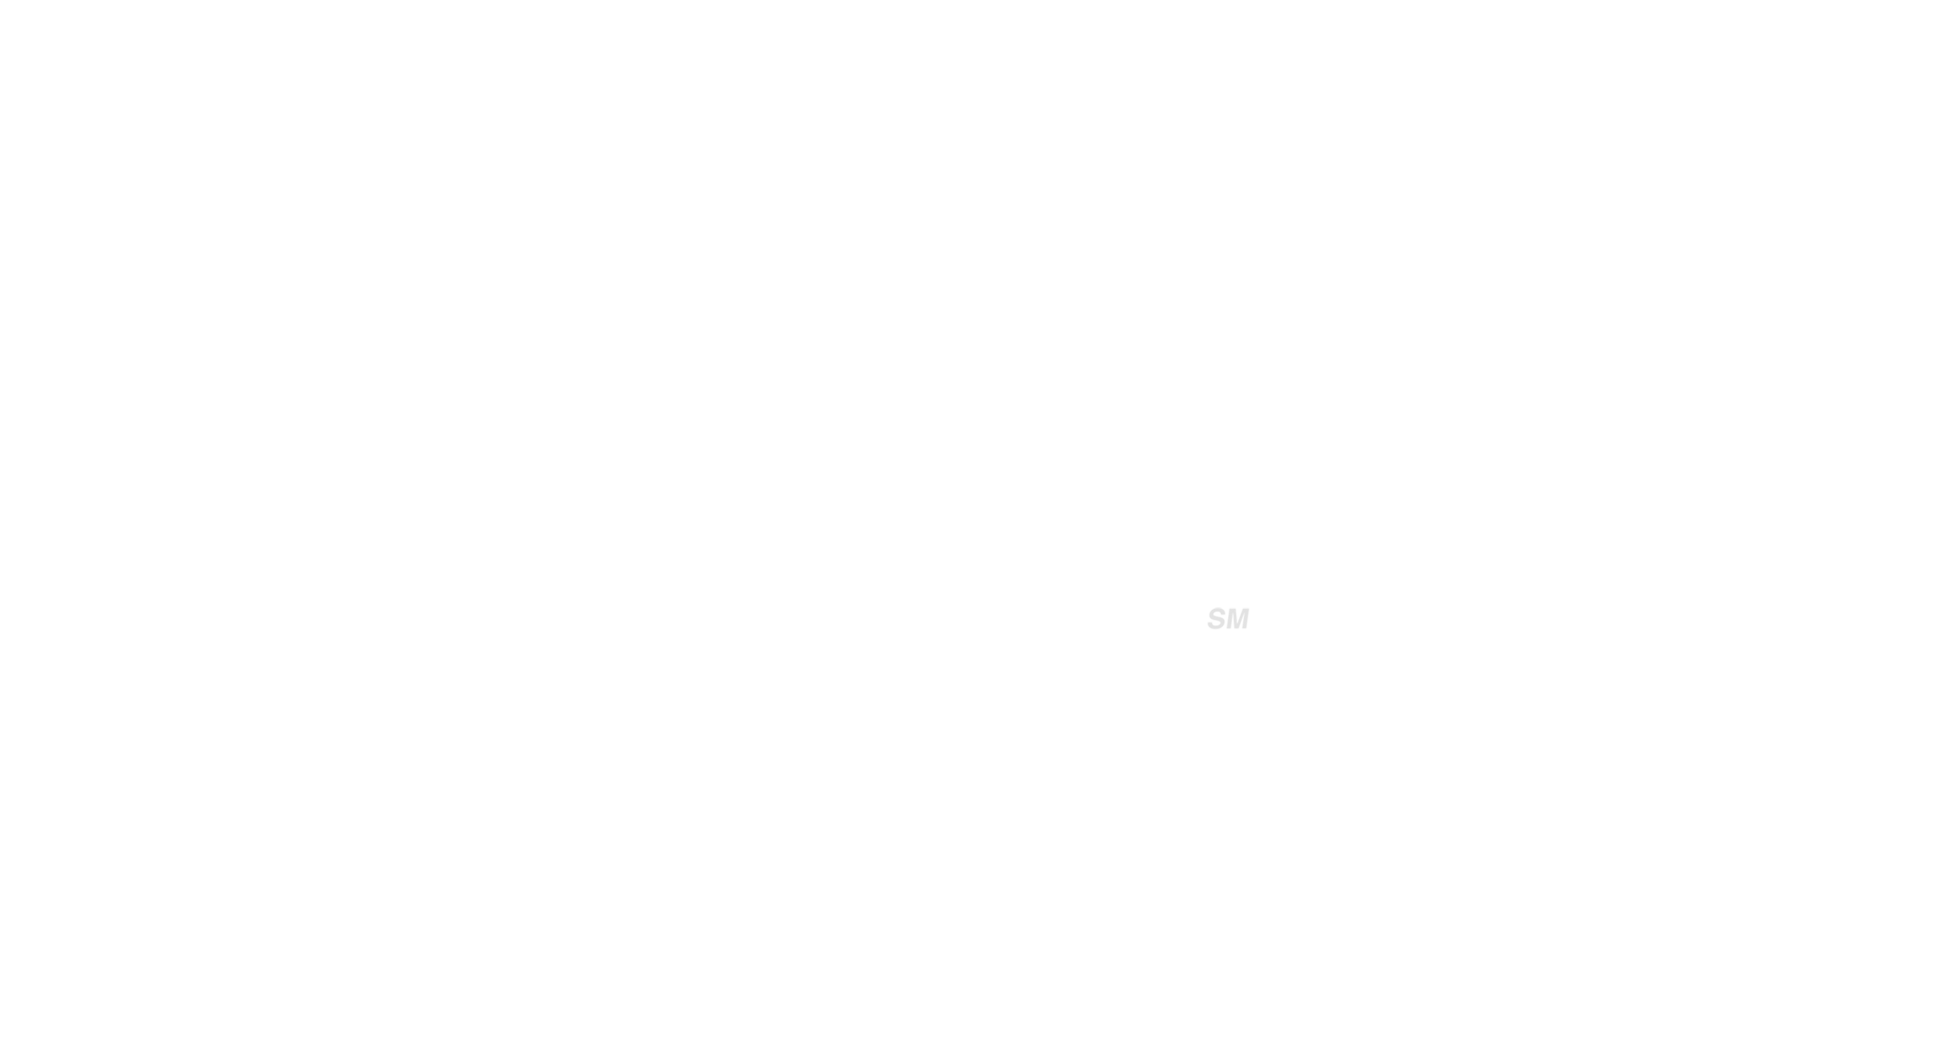 Official Selection for Greenpoint FF